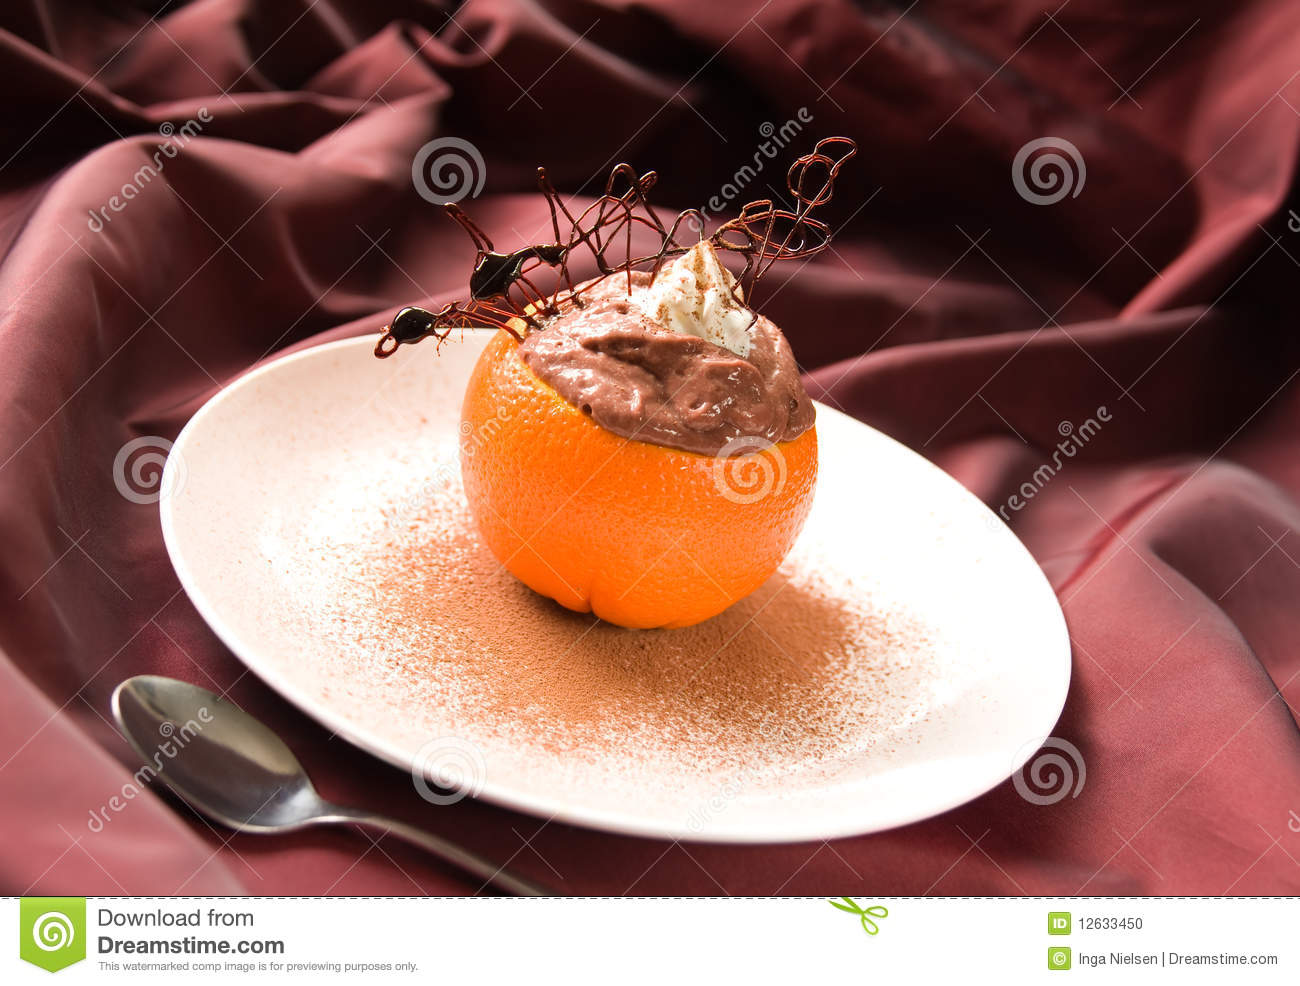 chocolate pudding or mousse au chocolate dessert in an open orange ...